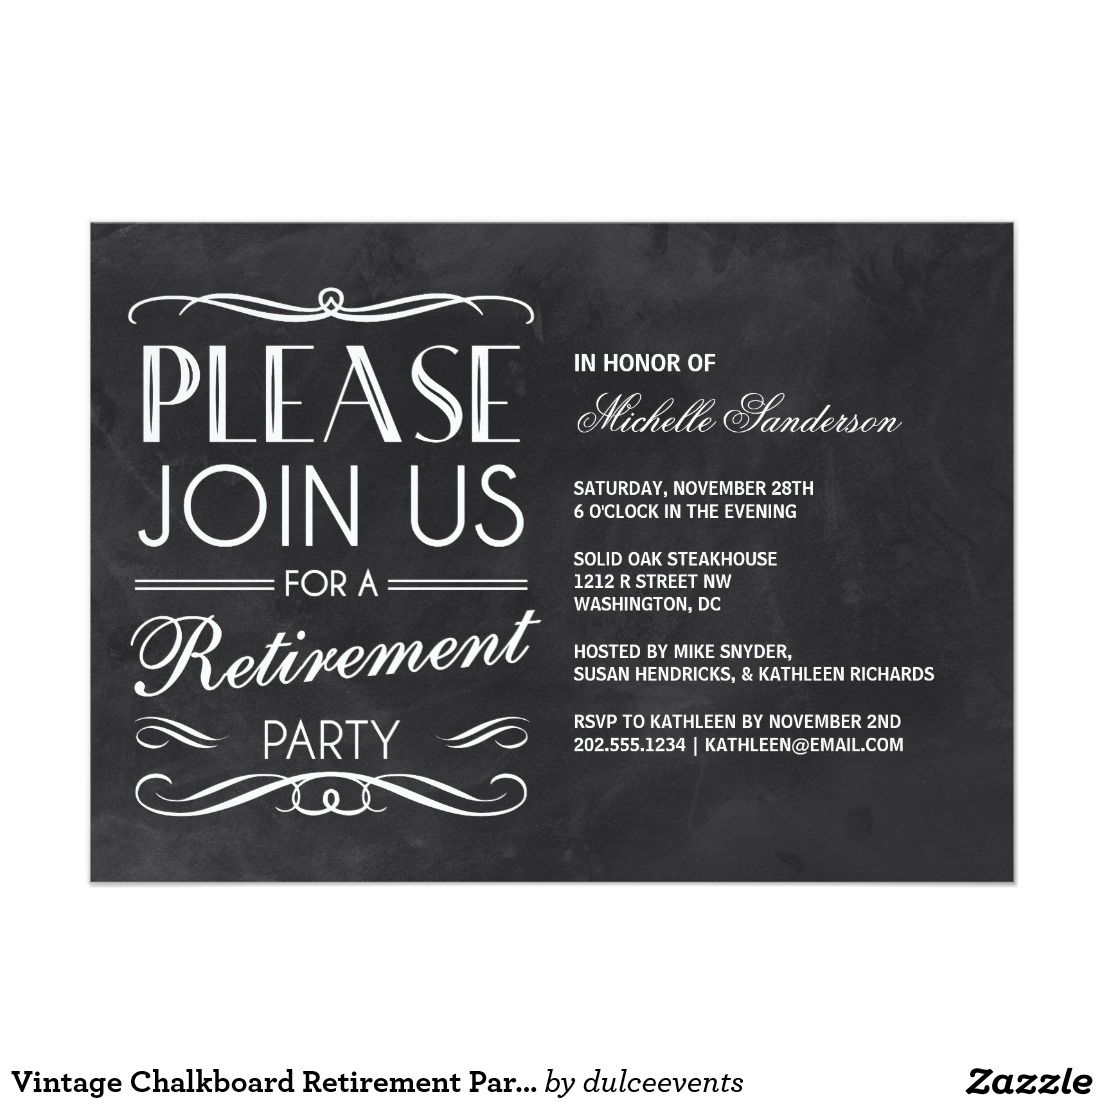 Vintage Chalkboard Retirement Party X Paper Invitation Card